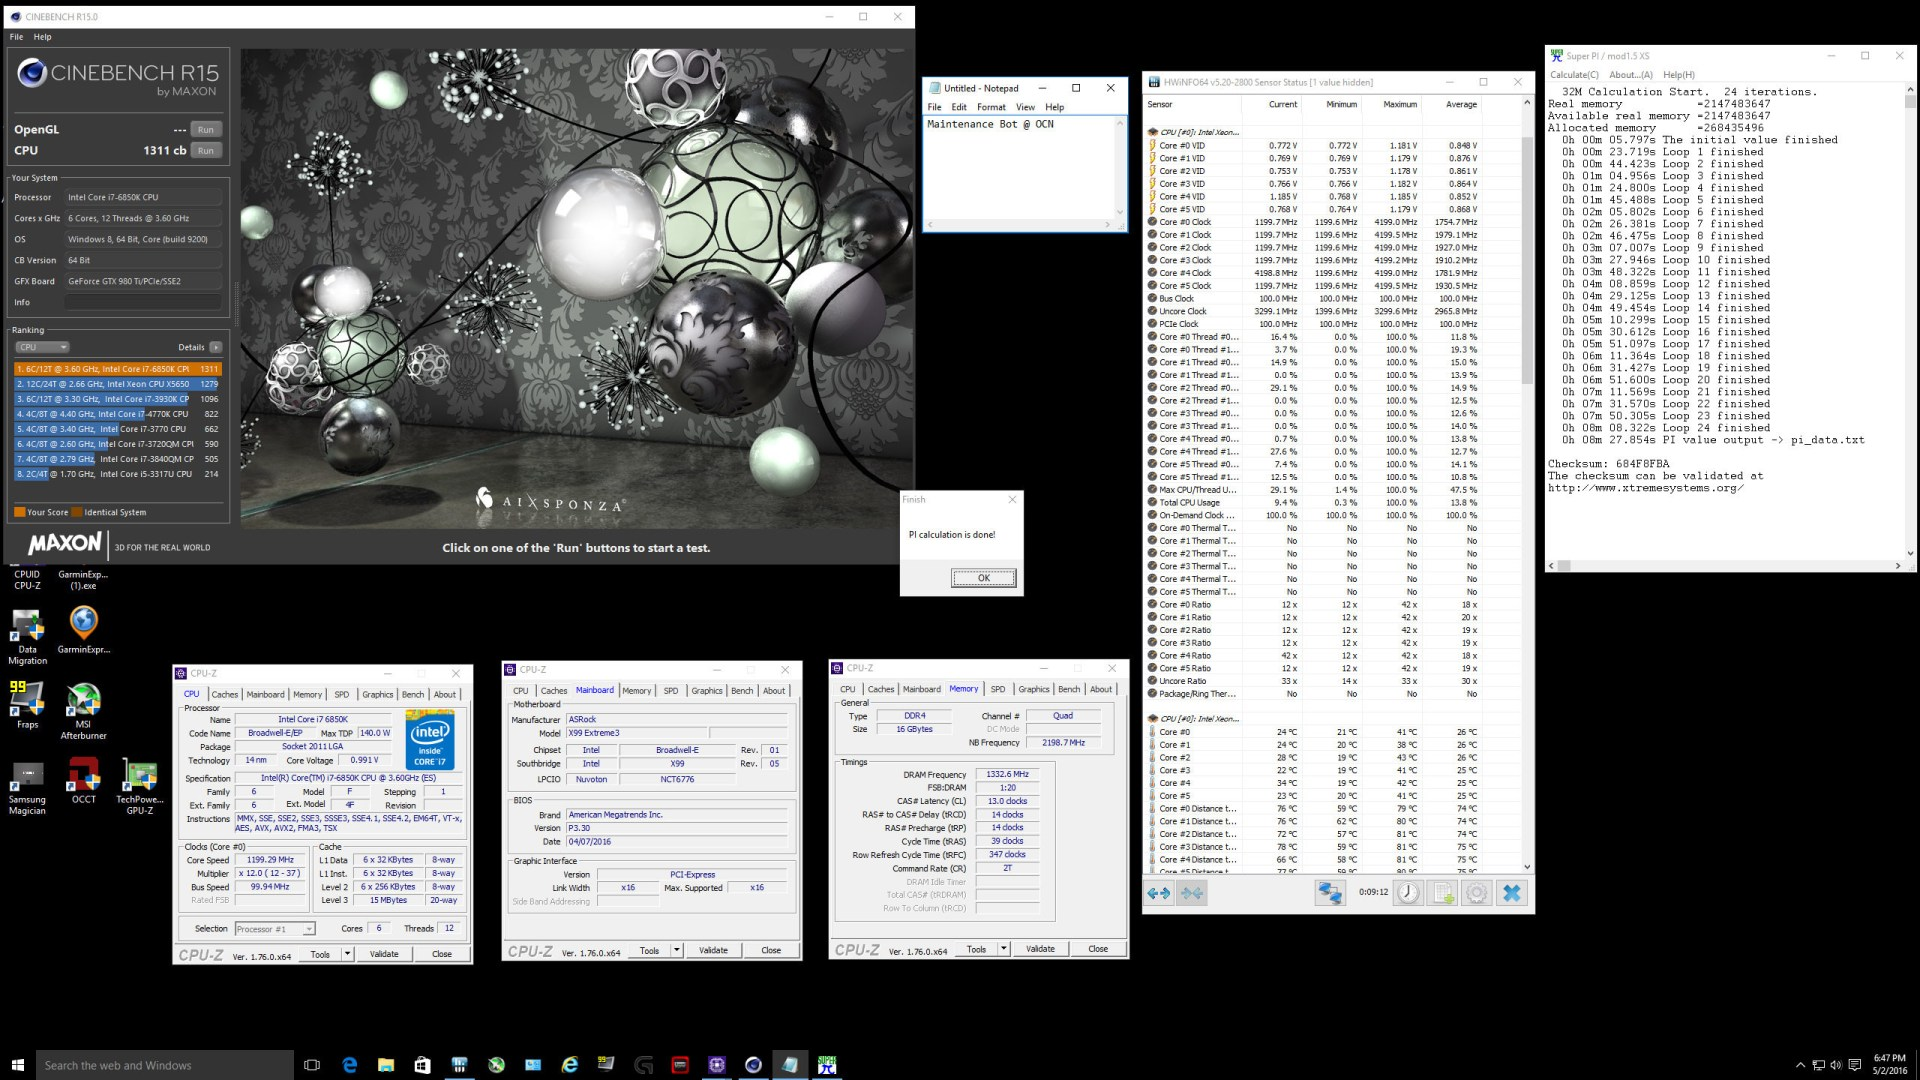 Intel Core i7 6850K Cinebench and SuperPI Results